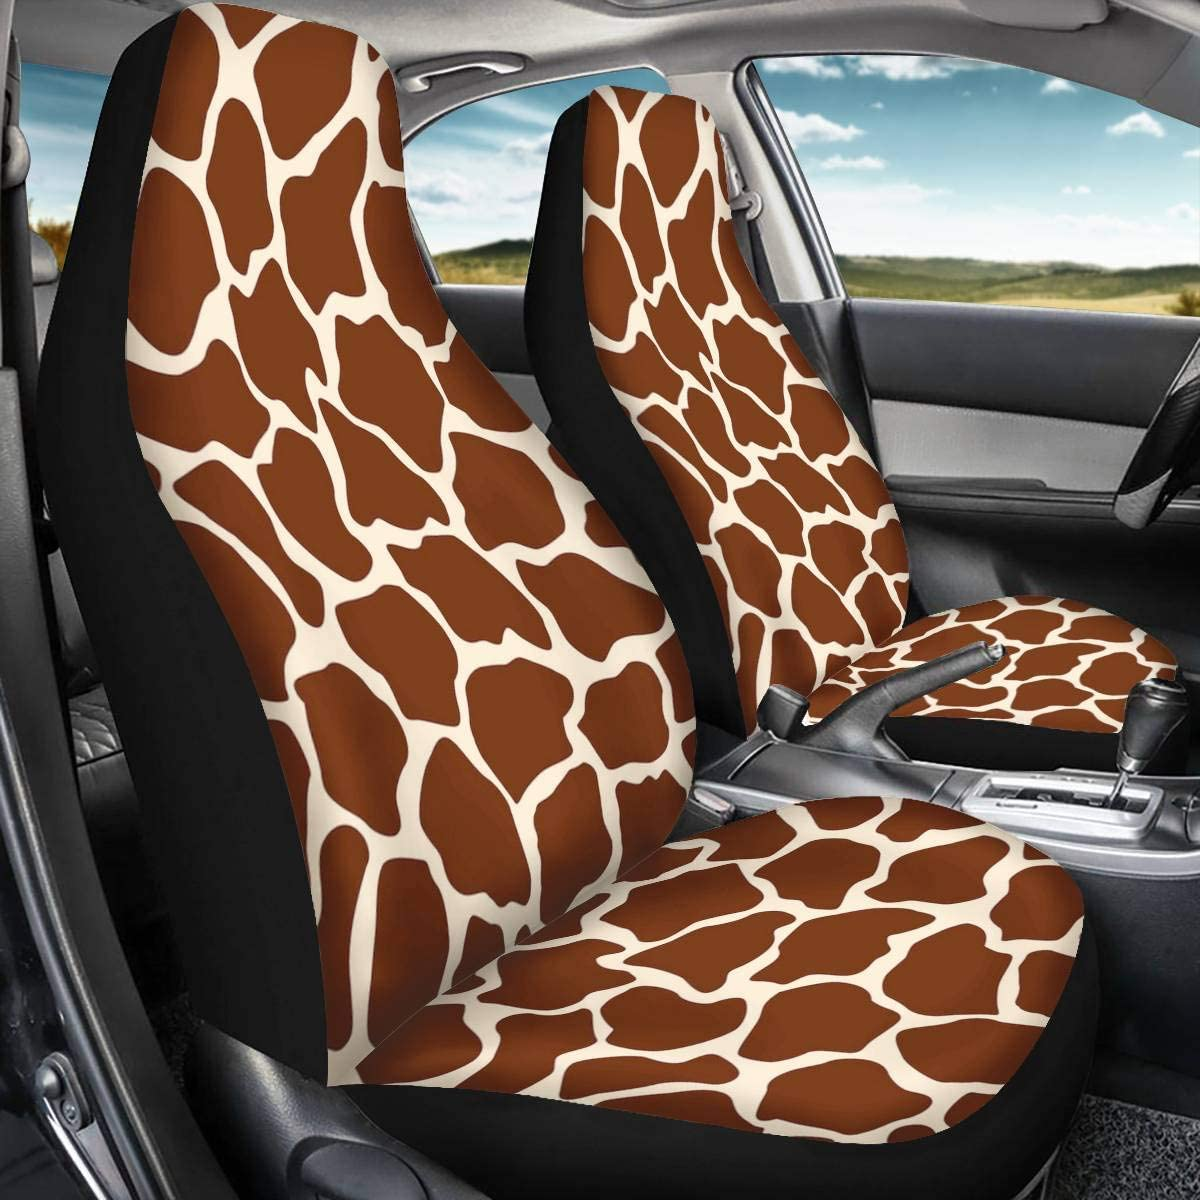 UNICEU Cool 3D Print Siberian Husky Pattern 2pc Front Car Seat Cover Universal Bucket Seats Protector Pack of 2